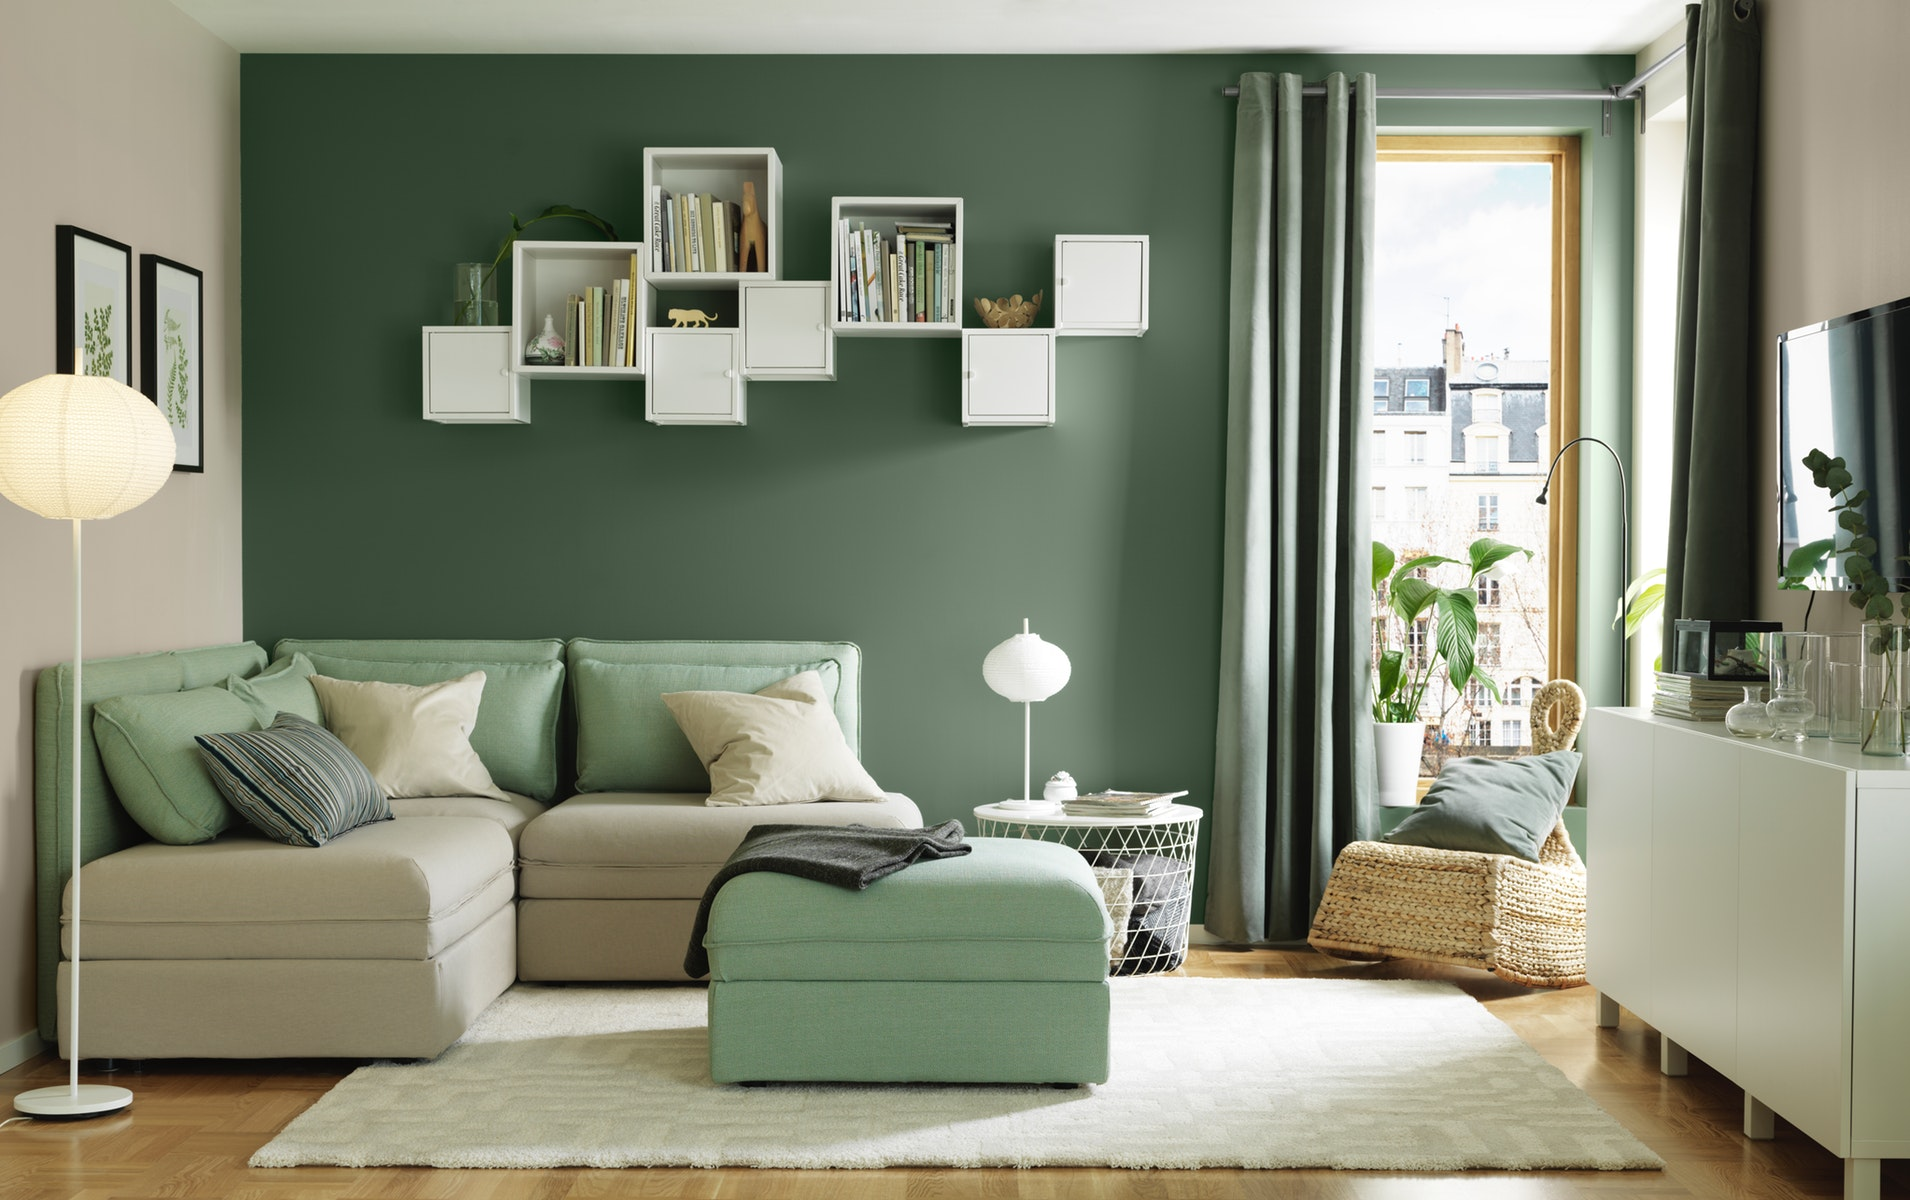 Minimalist living room decoration for small homes